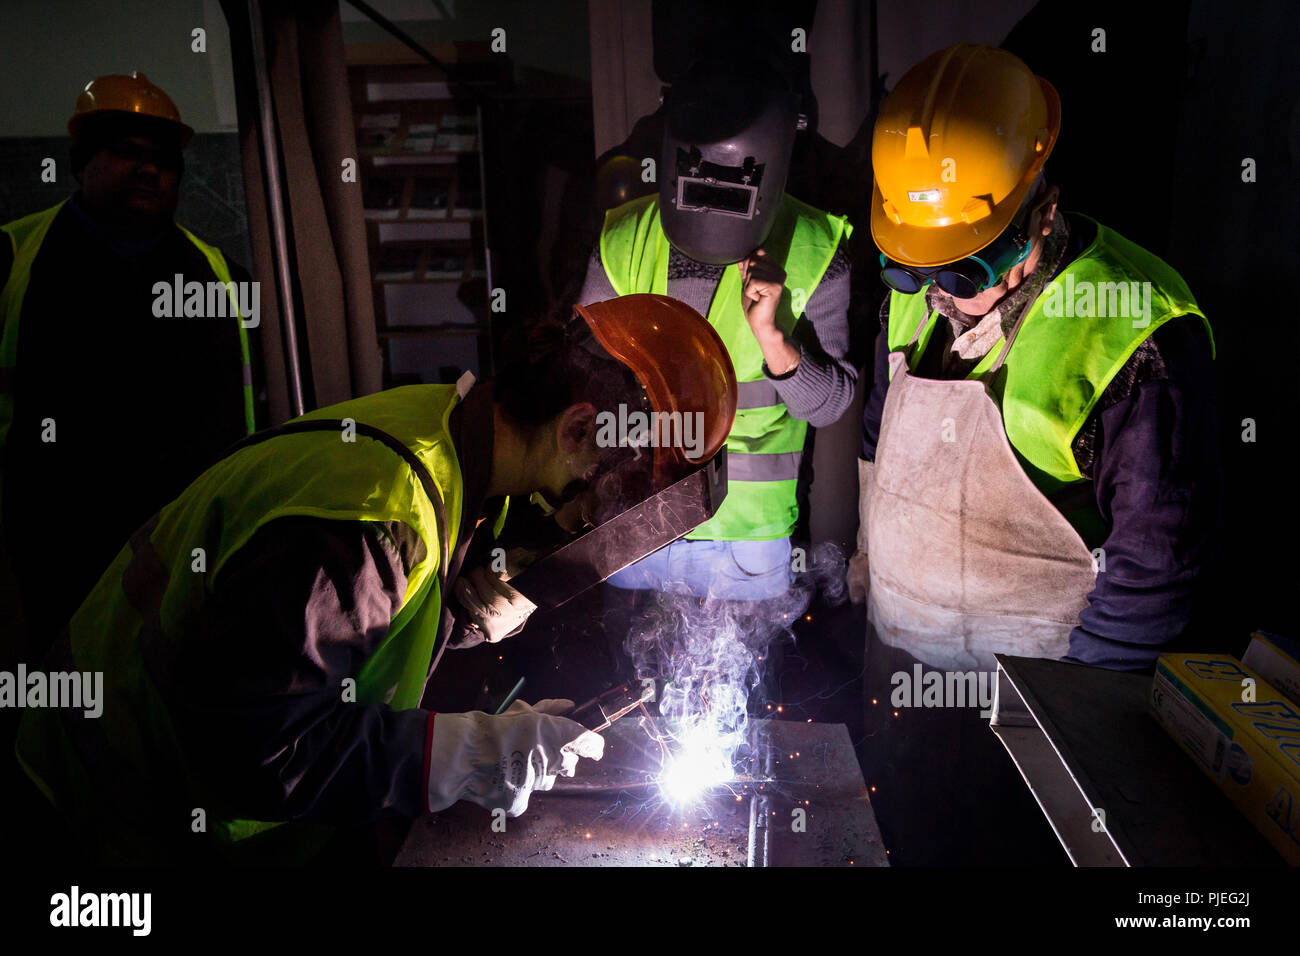 Young Albanians learn welding at the Devaid Training Center Public Professional Training in Tirana, where they learn to weld oxy-fuel. - Stock Image